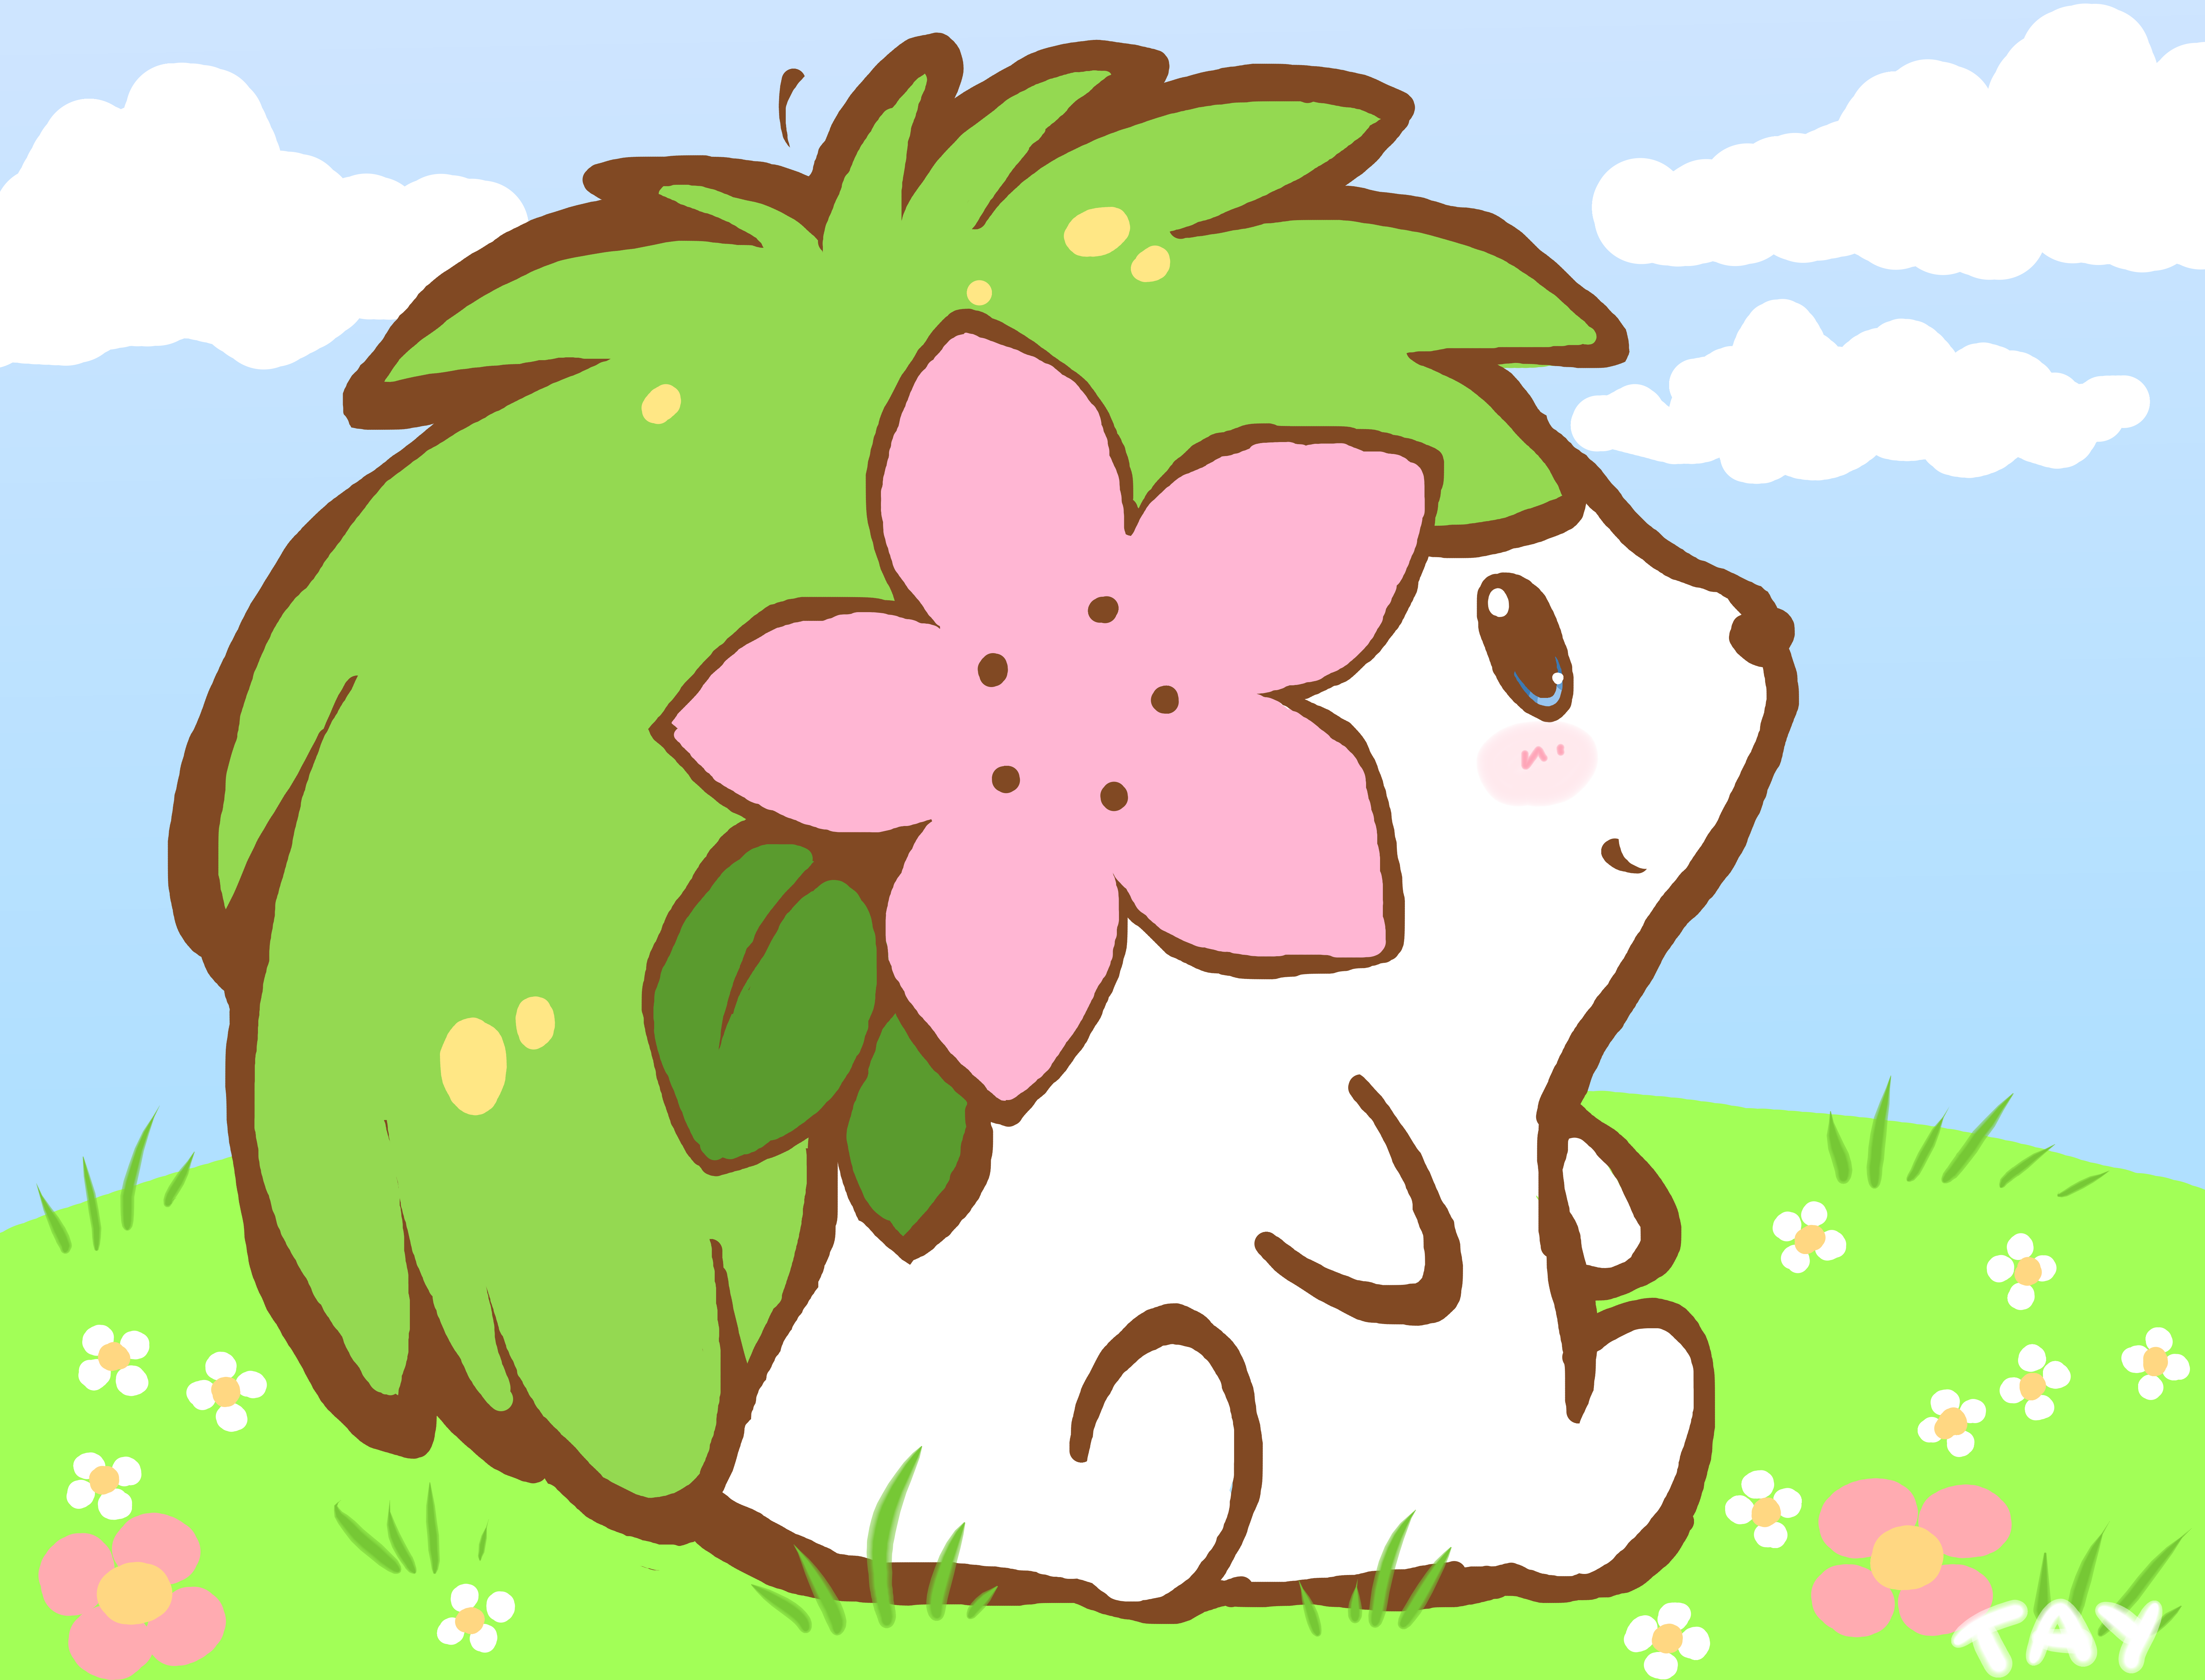 Shaymin - Fastest Pokemon